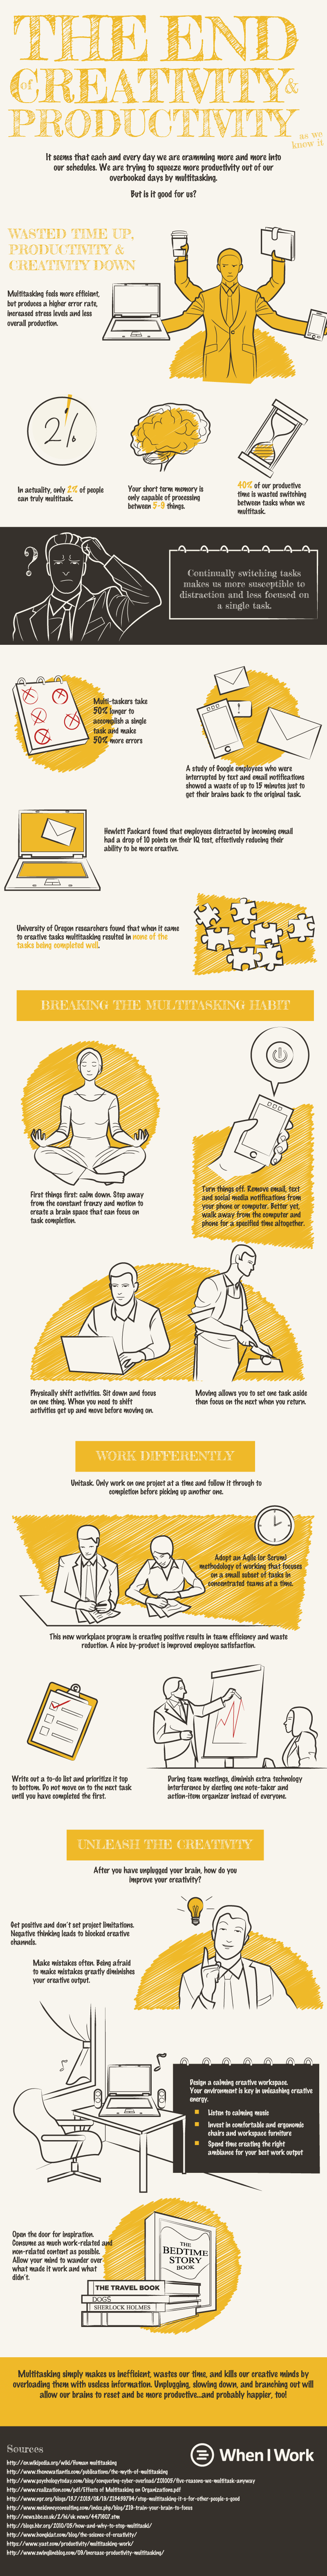 The End of Creativity and Productivity As We Know It Infographic